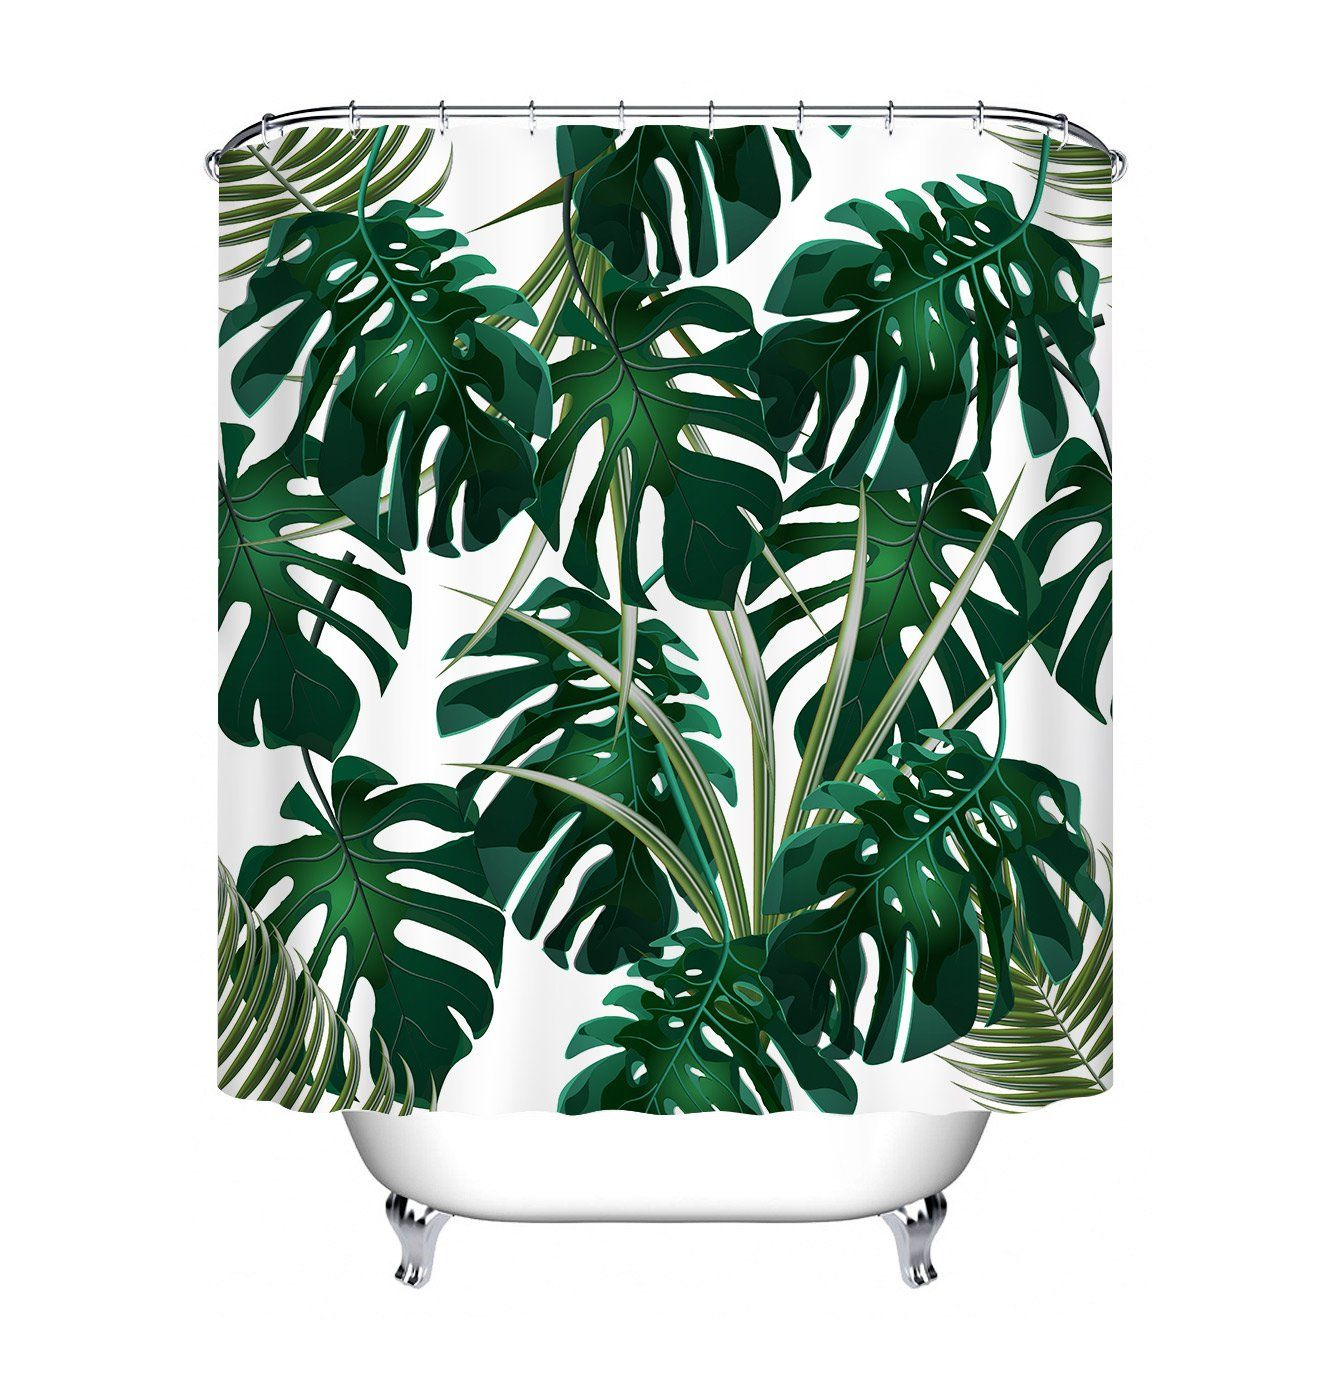 Dark Green Tropical Jungle Decor Shower Curtain For Bathroom By Lb